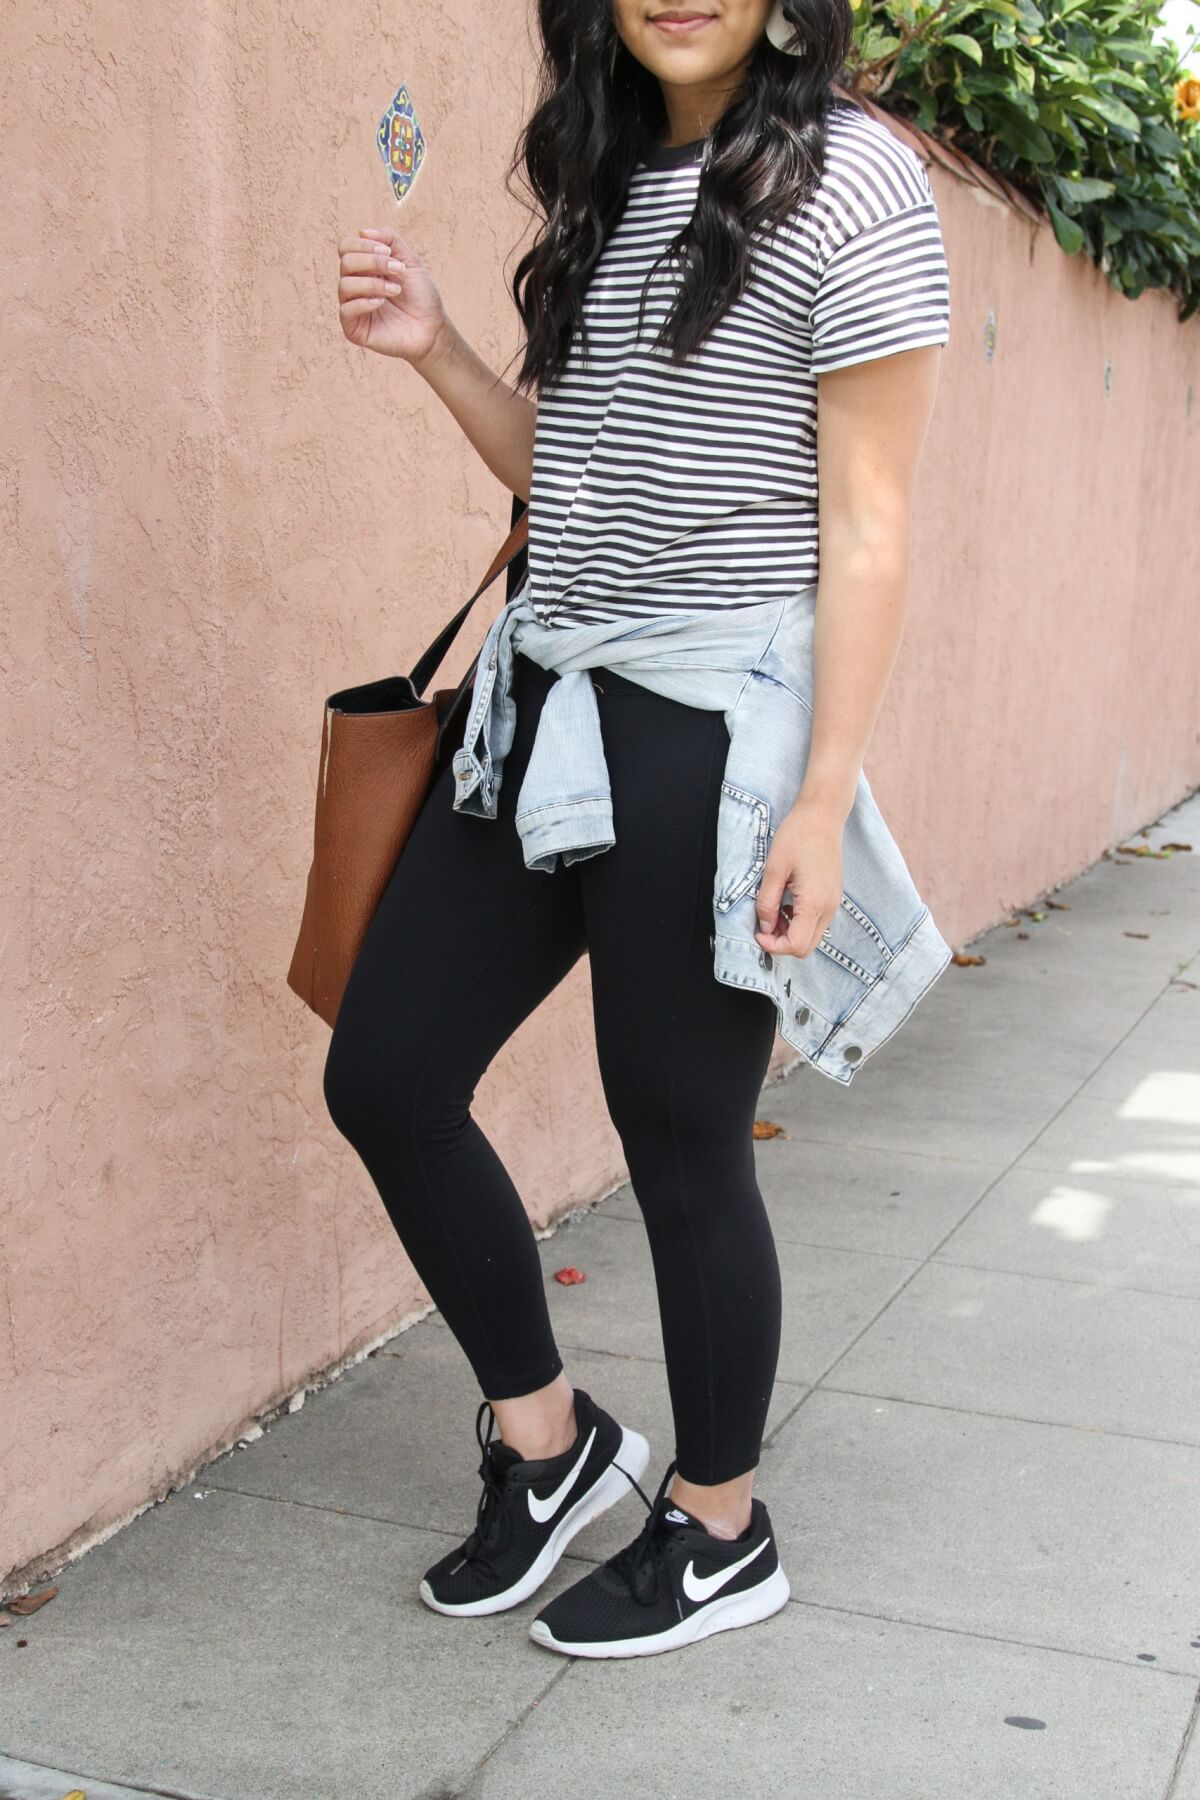 Easy to Wear Shoes for Spring: black Nike tanjun sneakers + black and white striped tee + black leggings + denim jacket + white earrings + brown tote close up